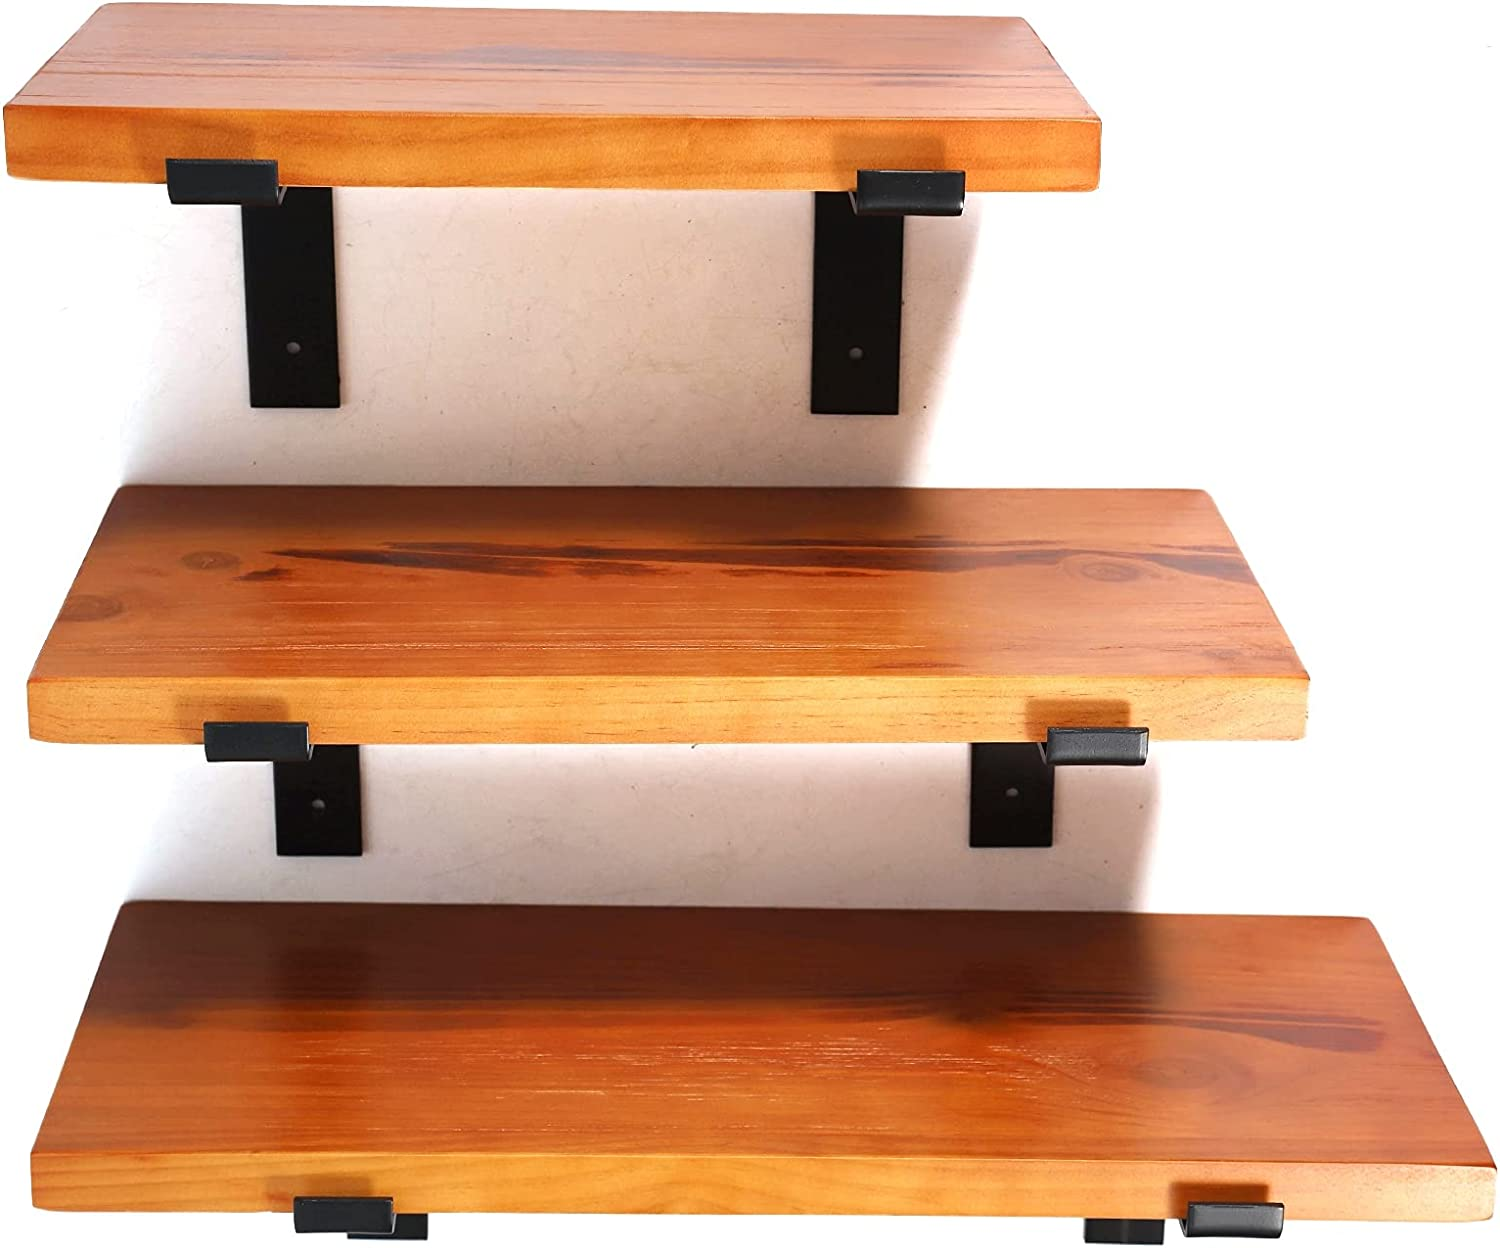 Shelf Bracket for Industry Supporting Sh Gifts Wall Wood Hanging Iron Colorado Springs Mall